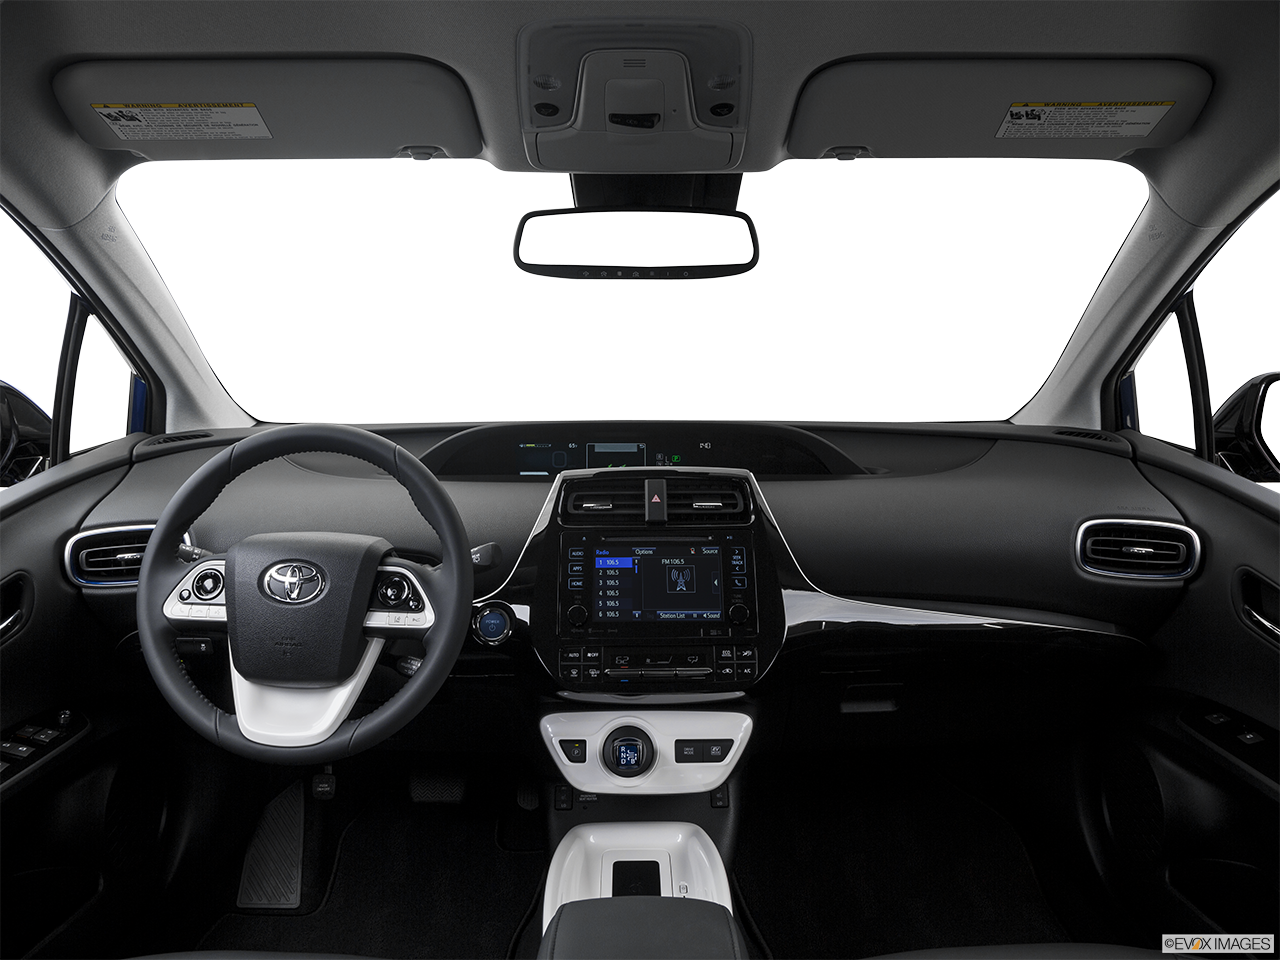 Interior View Of 2016 Toyota Prius in Los Angeles